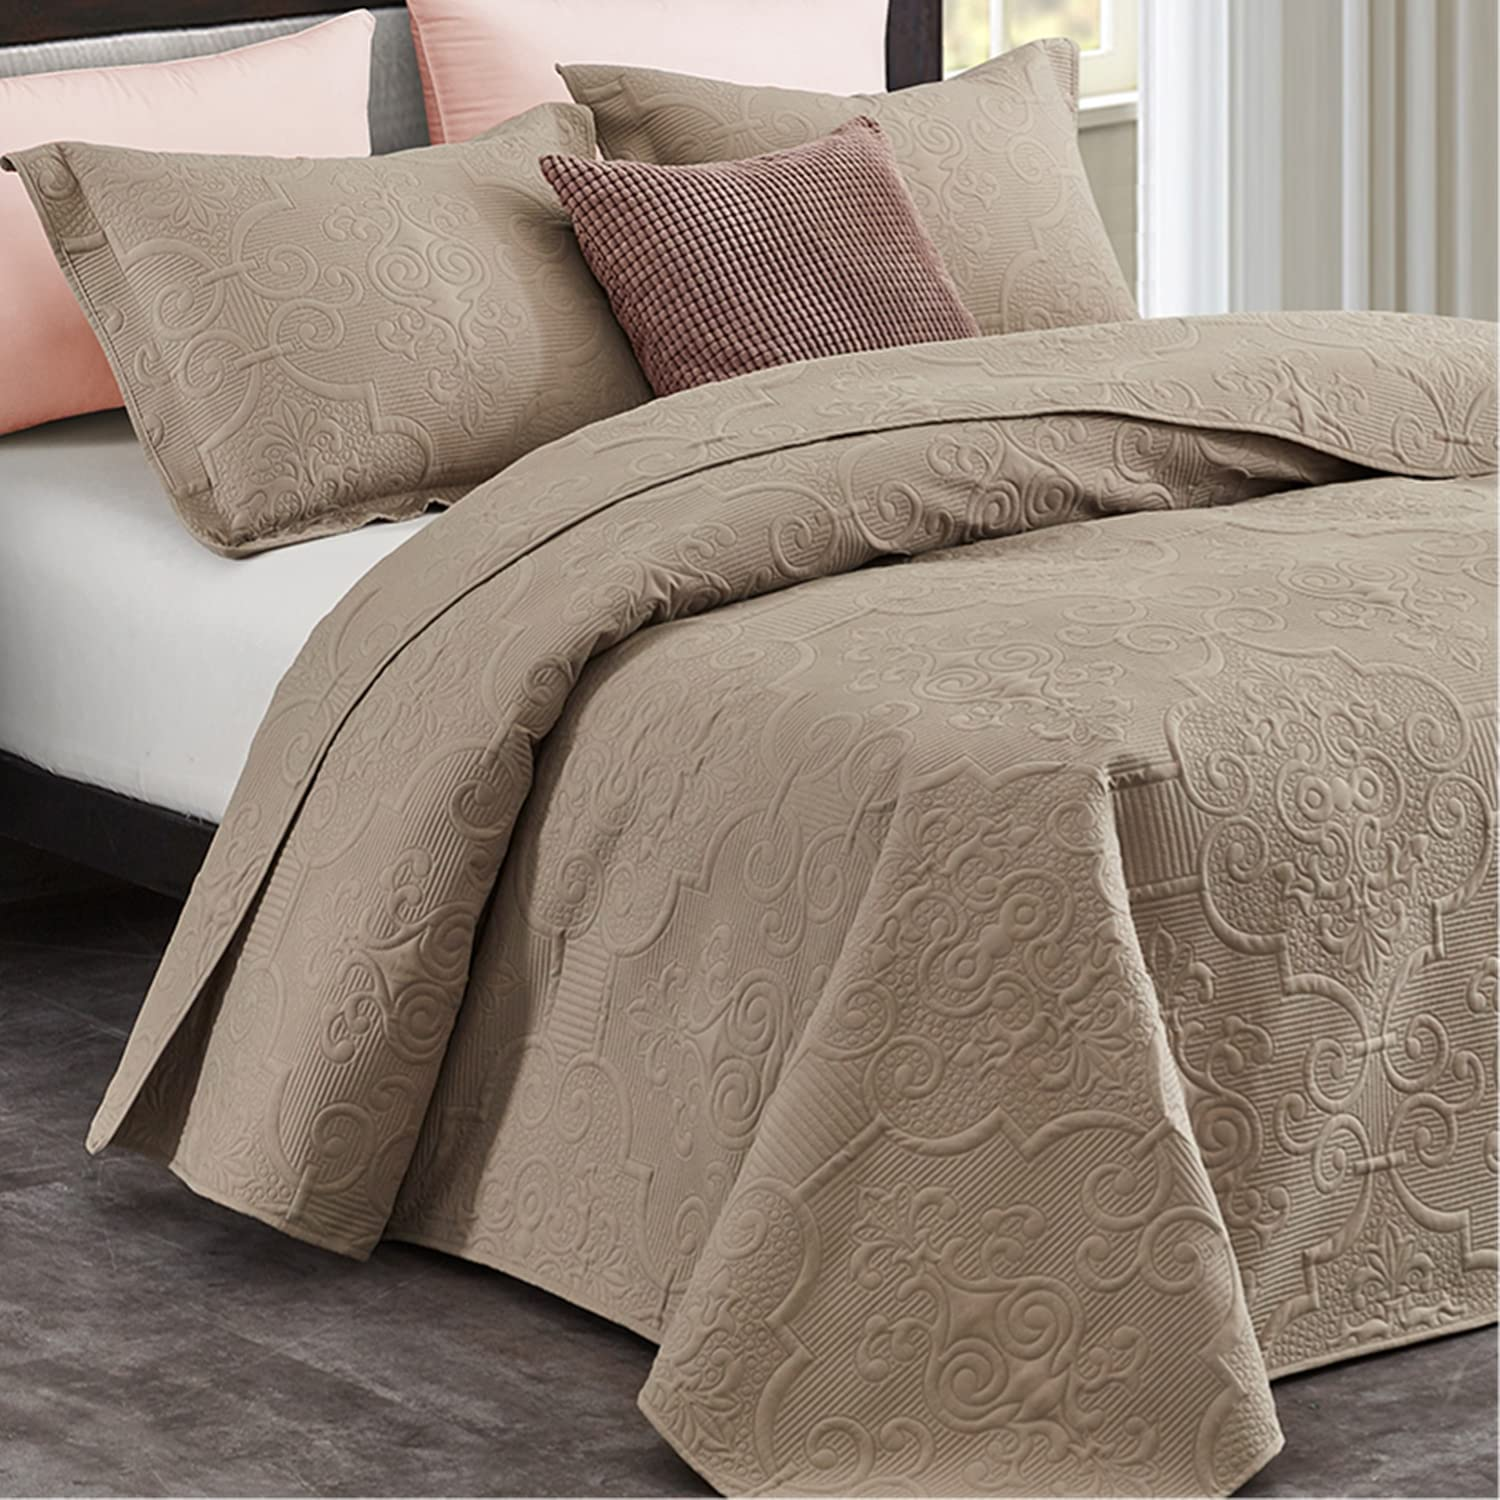 CHIXIN Department store Quilt Set King Size Lightweight Sacramento Mall Taupe Bedspread Quilted